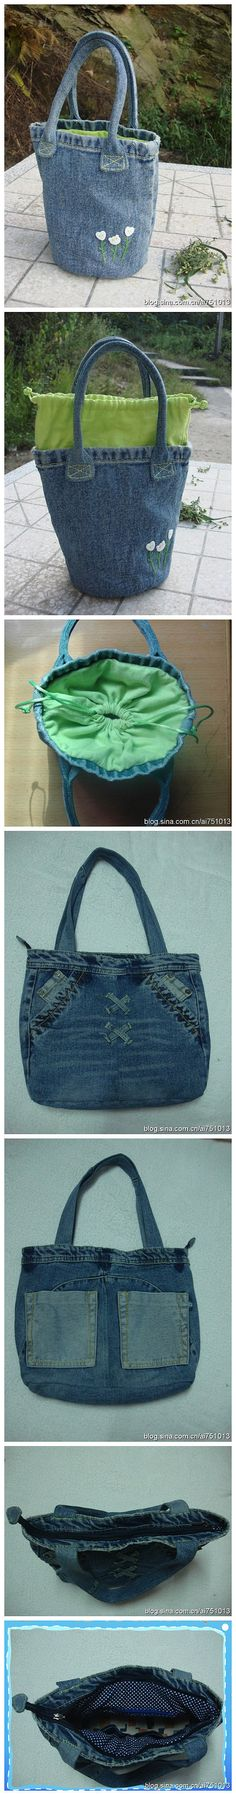 Denim bags  -- reciclando jeans